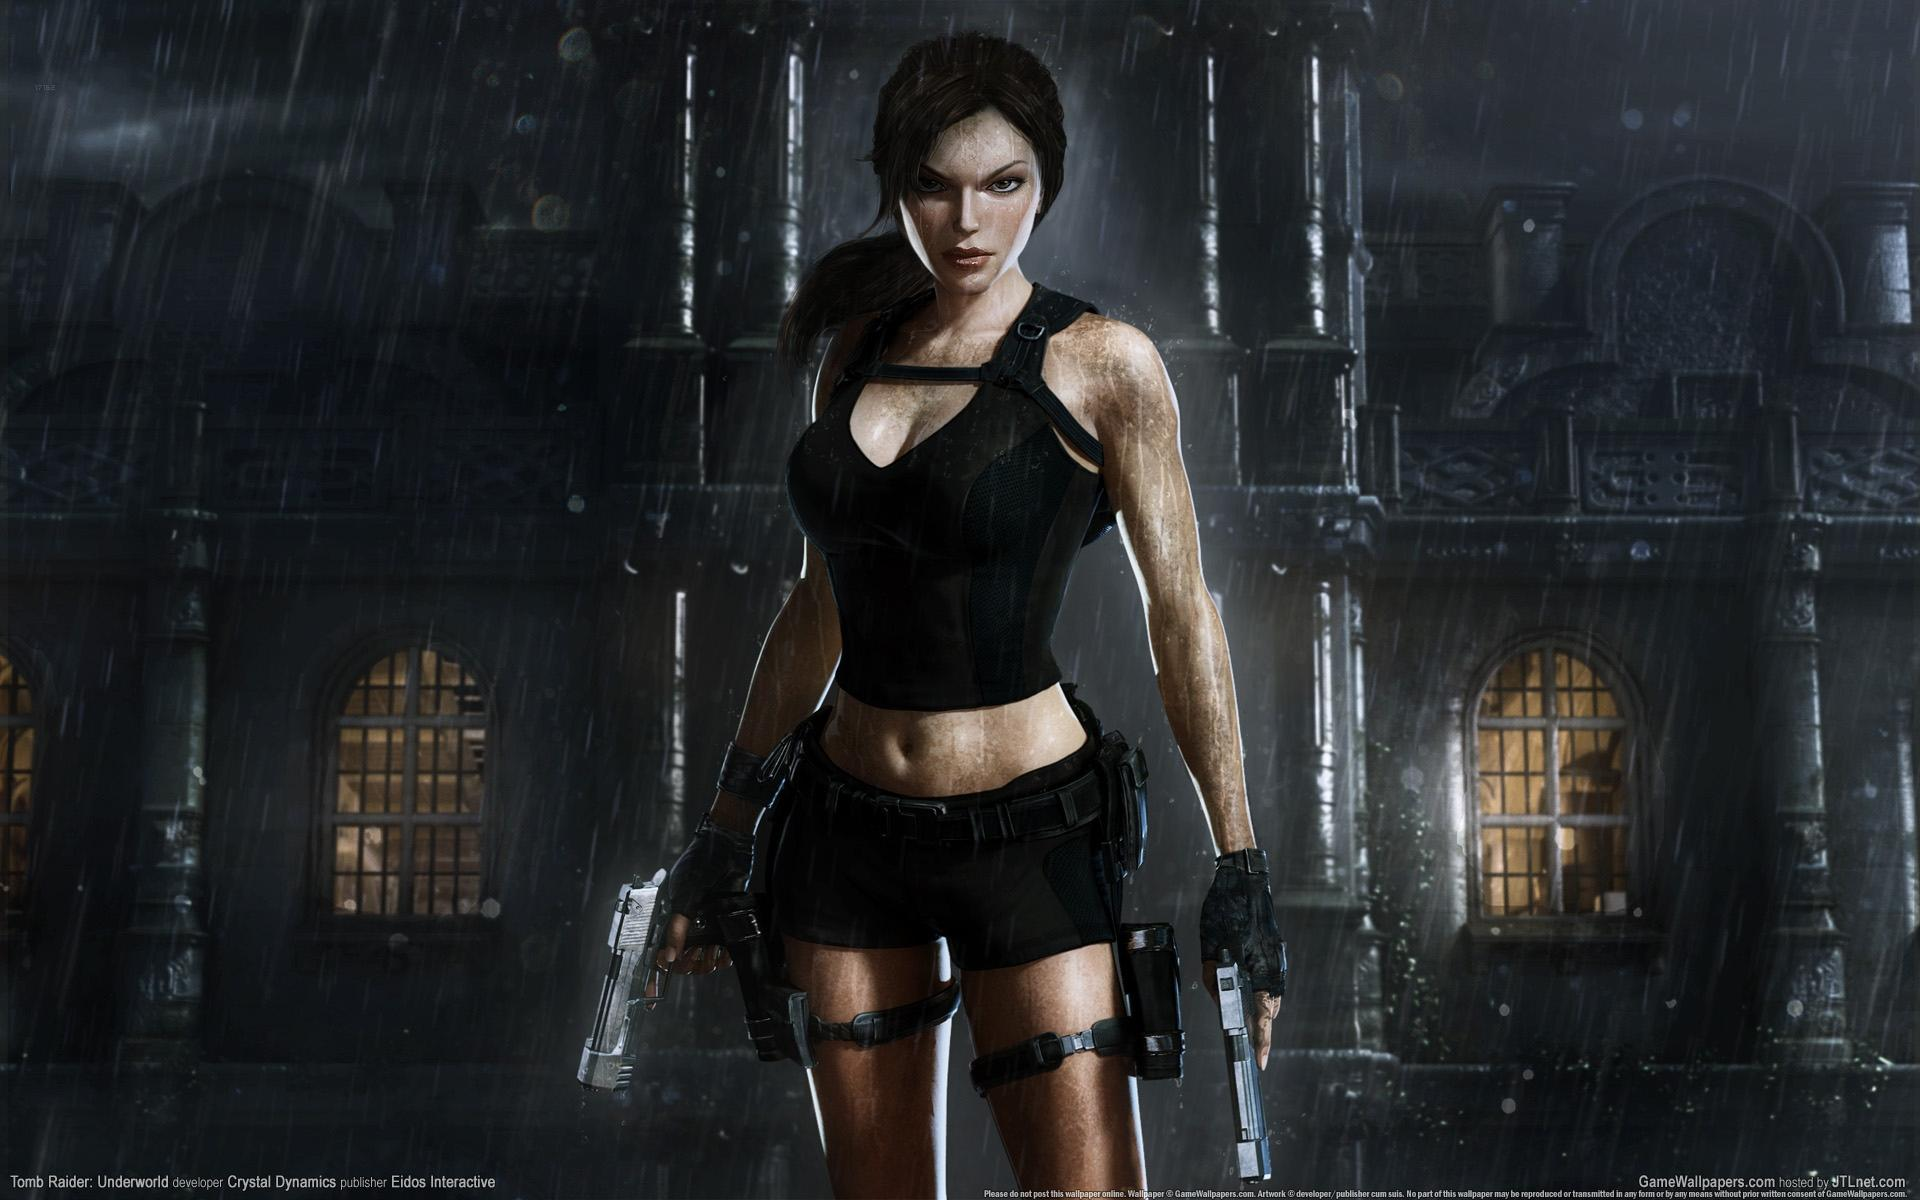 Tomb Raider: Underworld, game, pc games, игра, видео игры, компьютерные игры 1920x1200